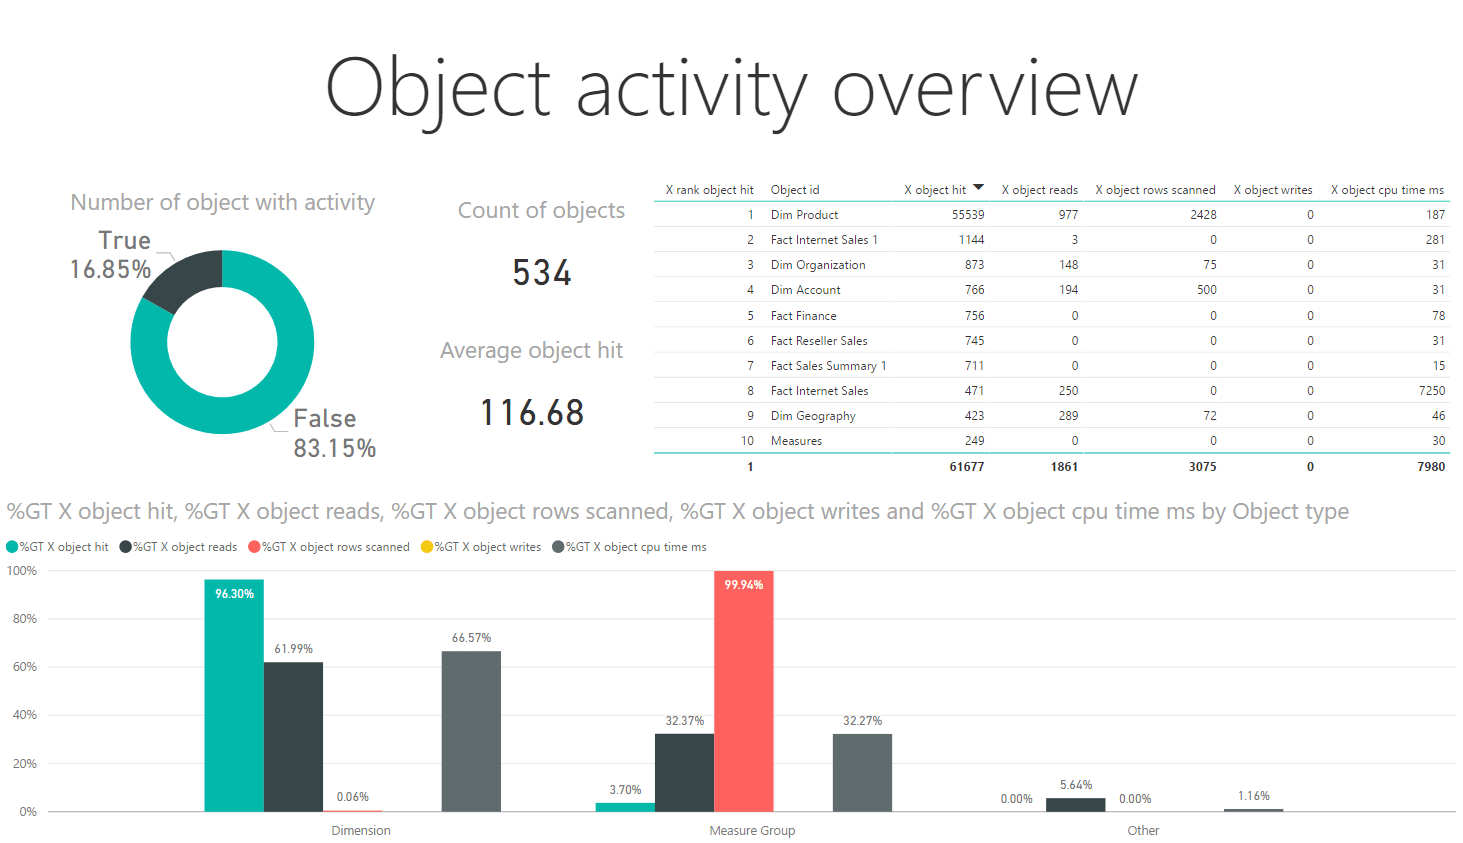 Object activity overview